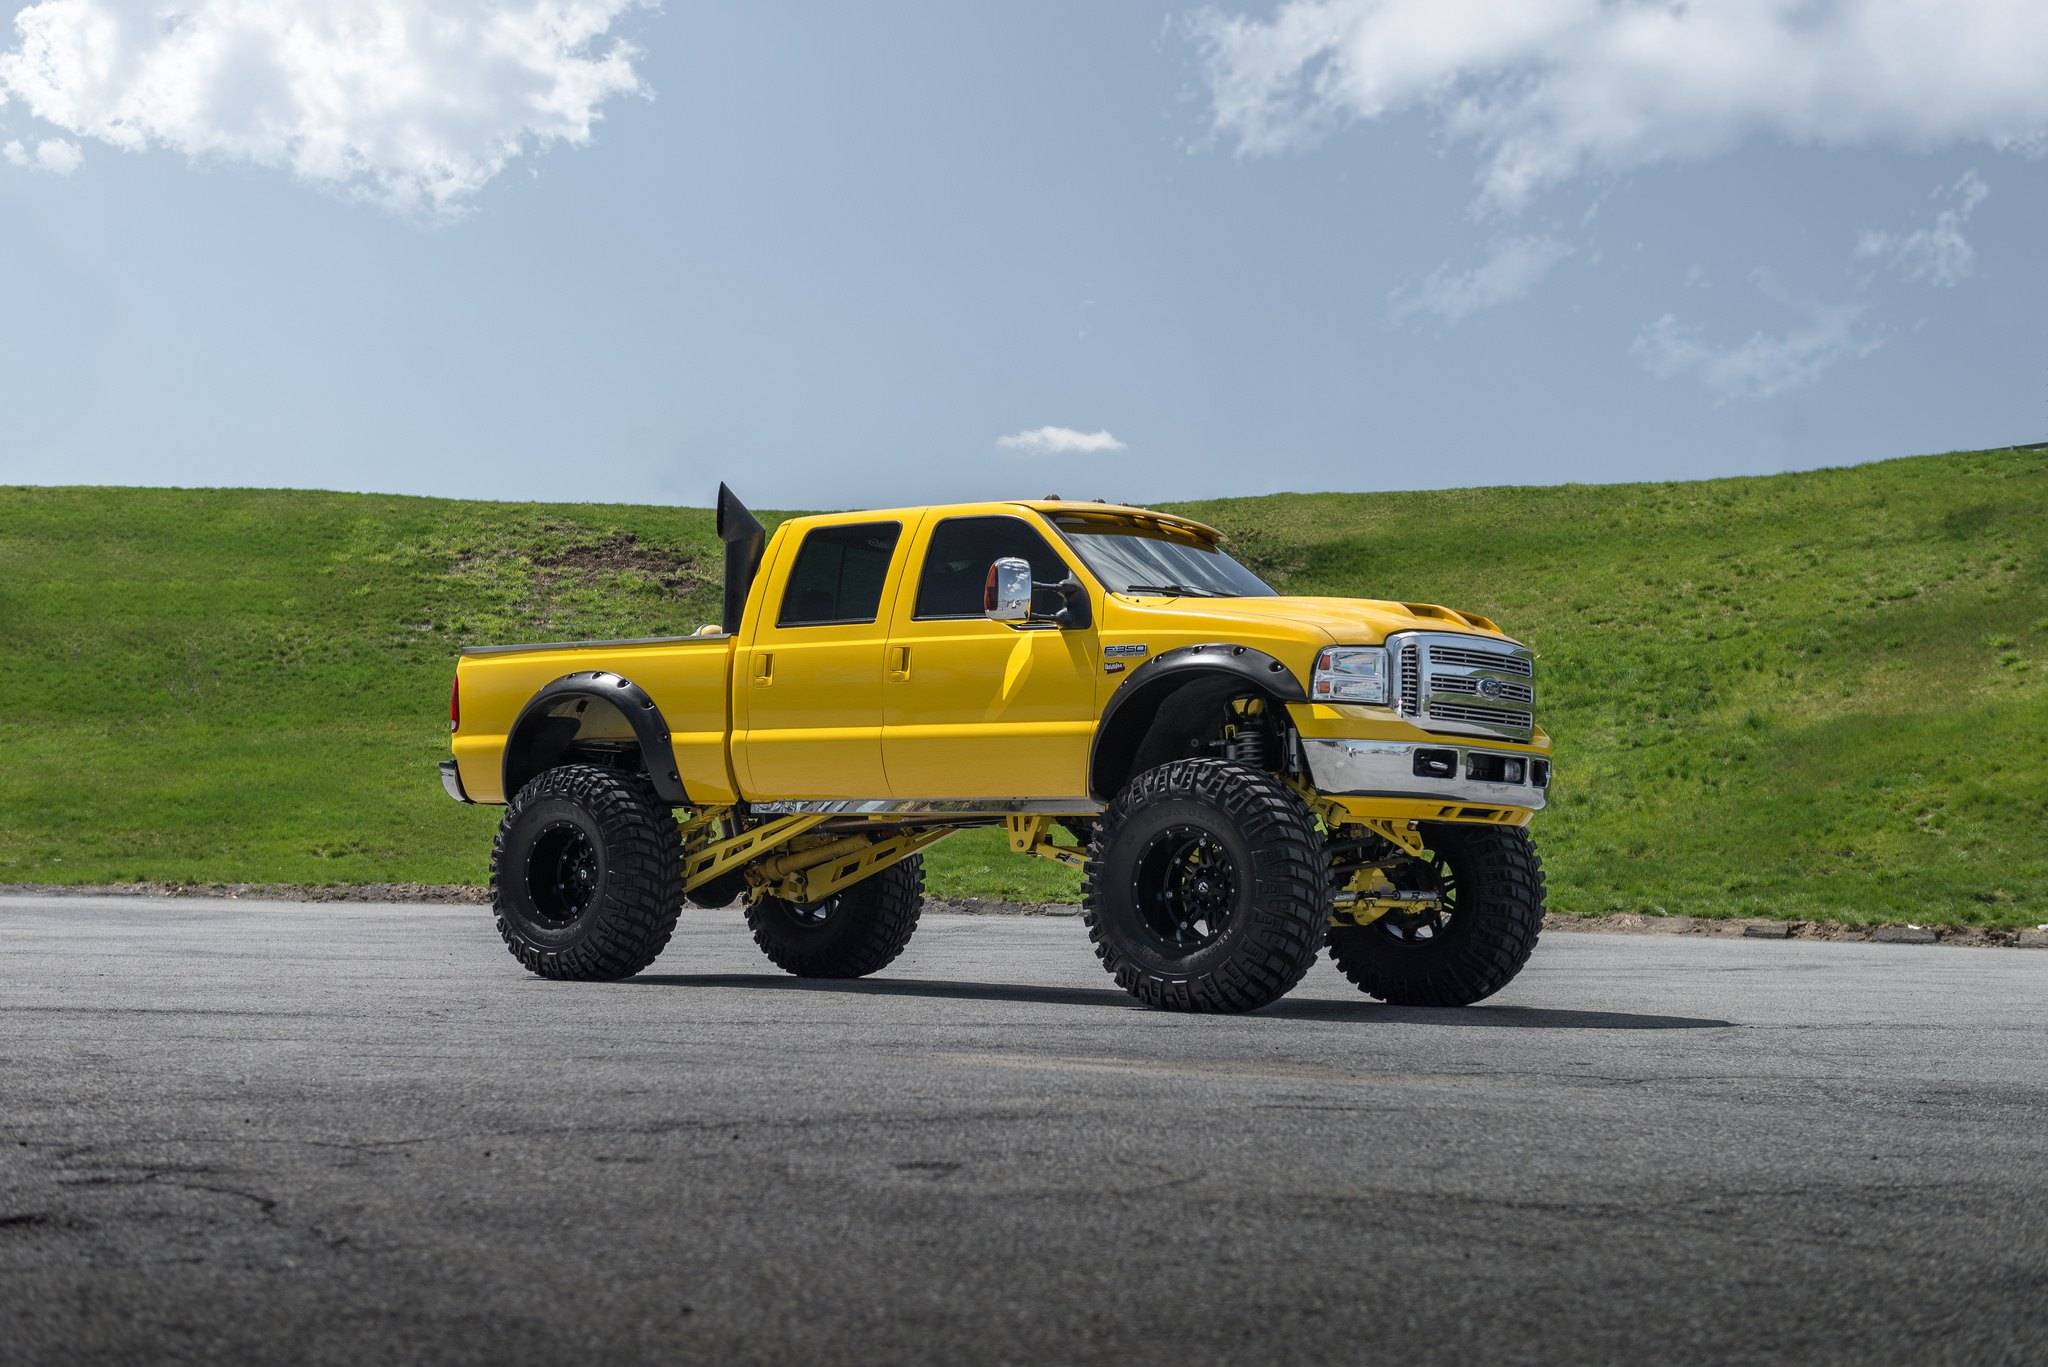 Insane Monster Truck - Yellow Ford F-250 Super Duty on Huge